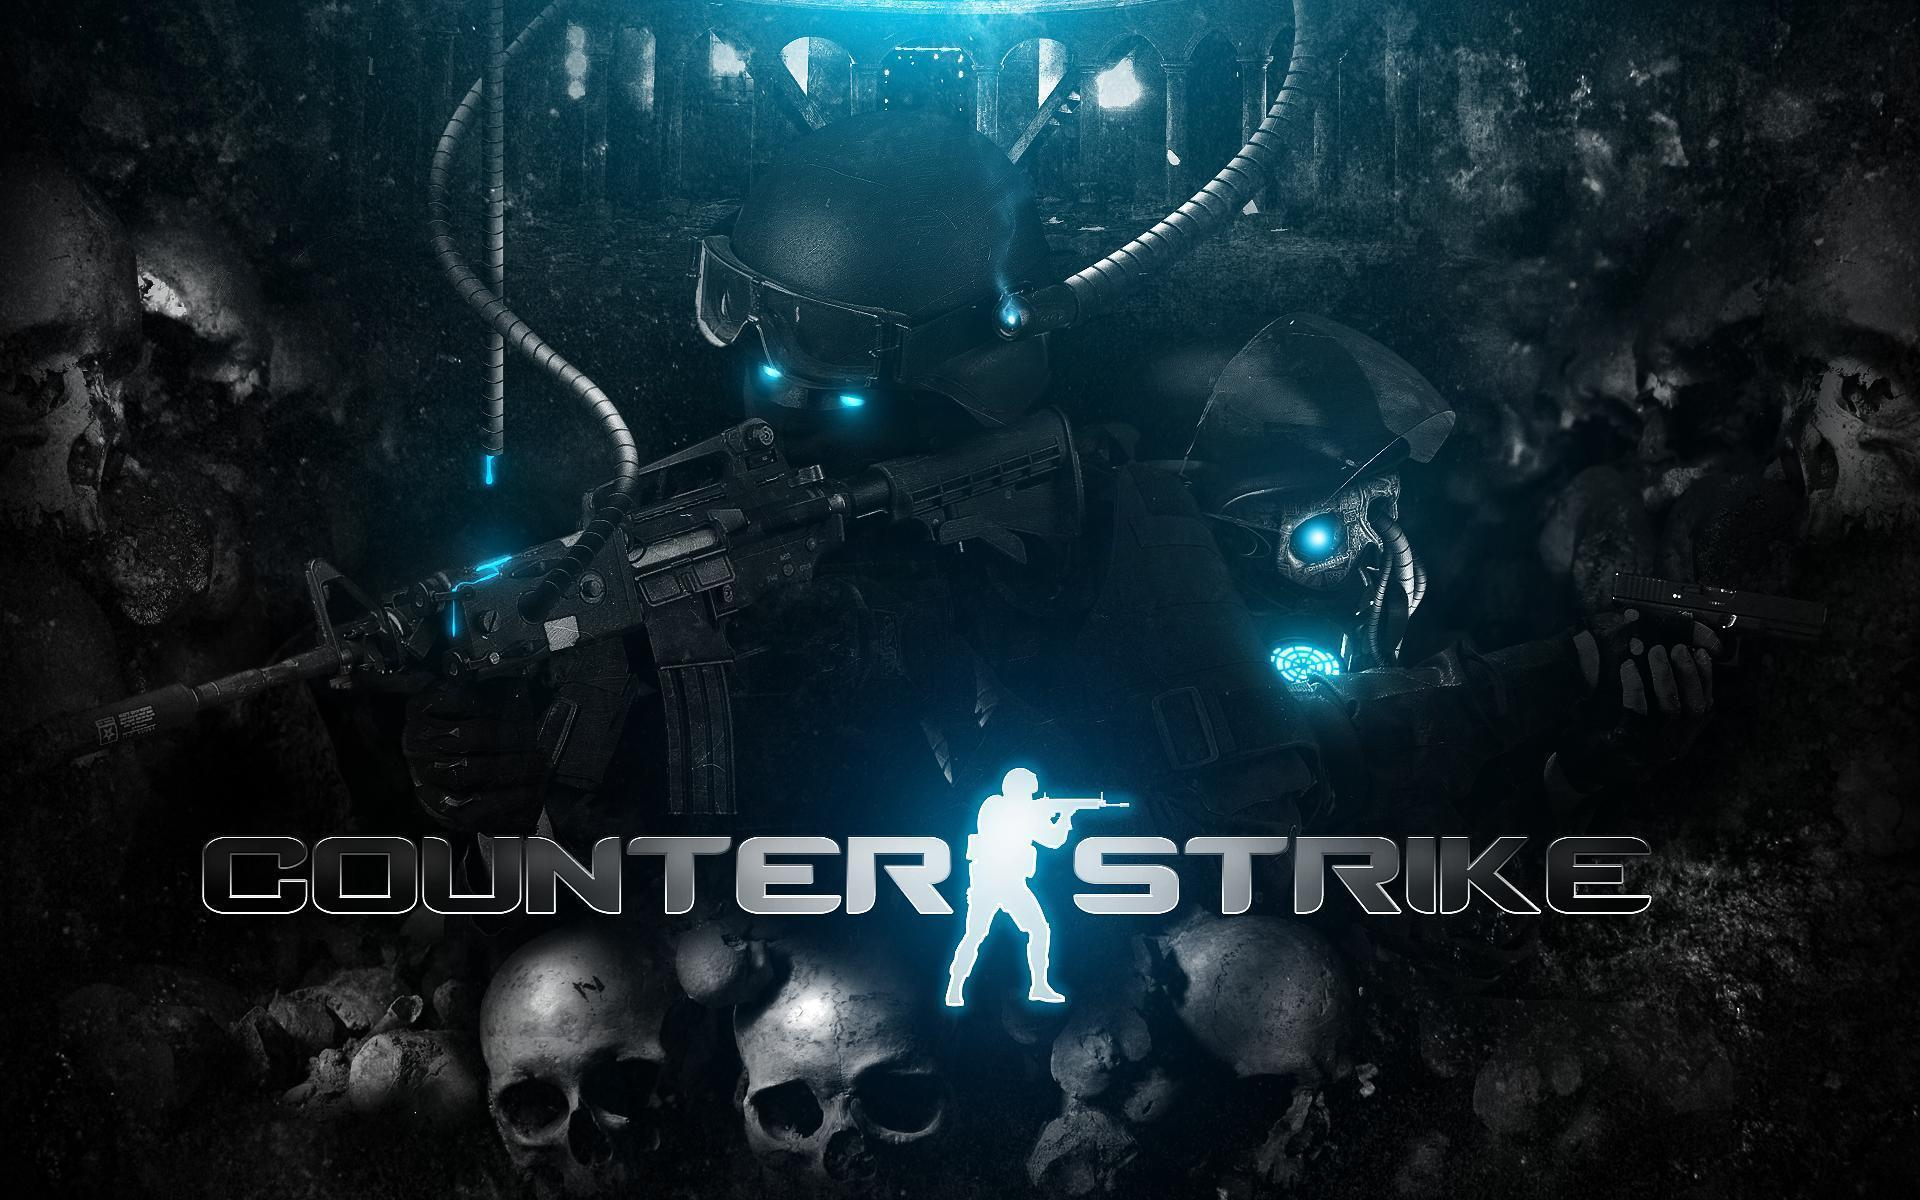 Counter strike wallpapers wallpaper cave for Couter definition